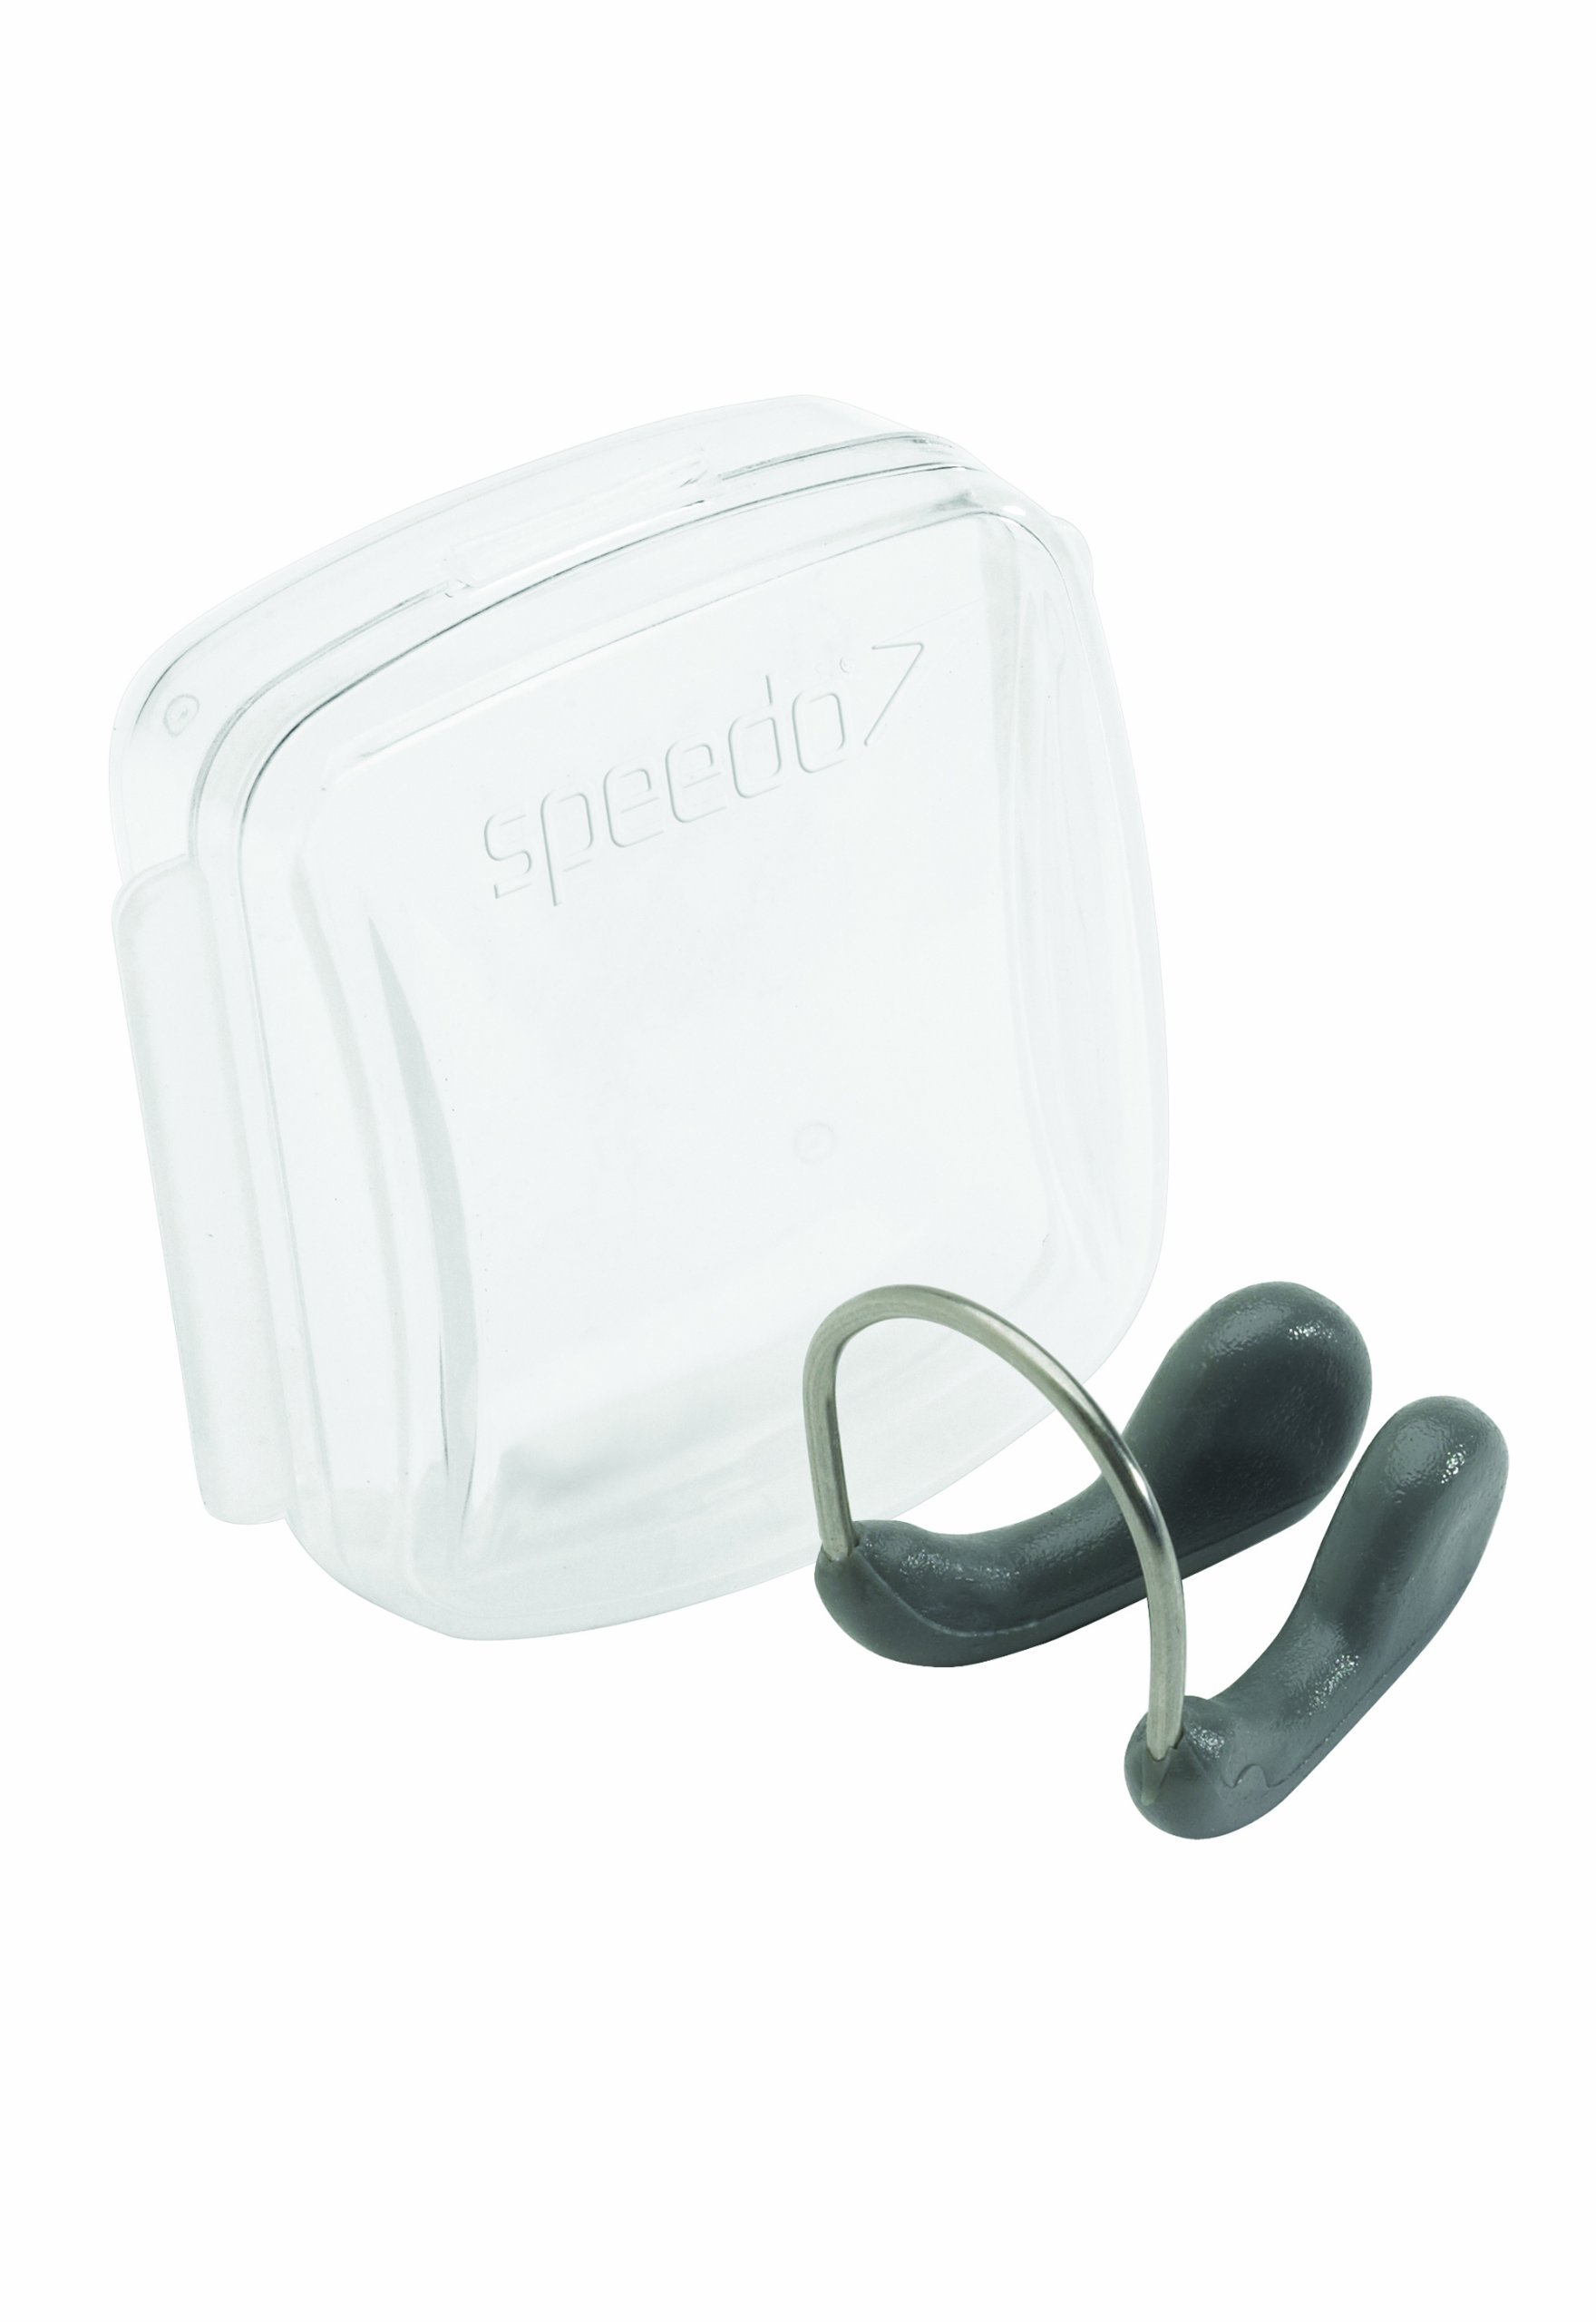 Speedo Competition Nose Clip, Charcoal, One Size